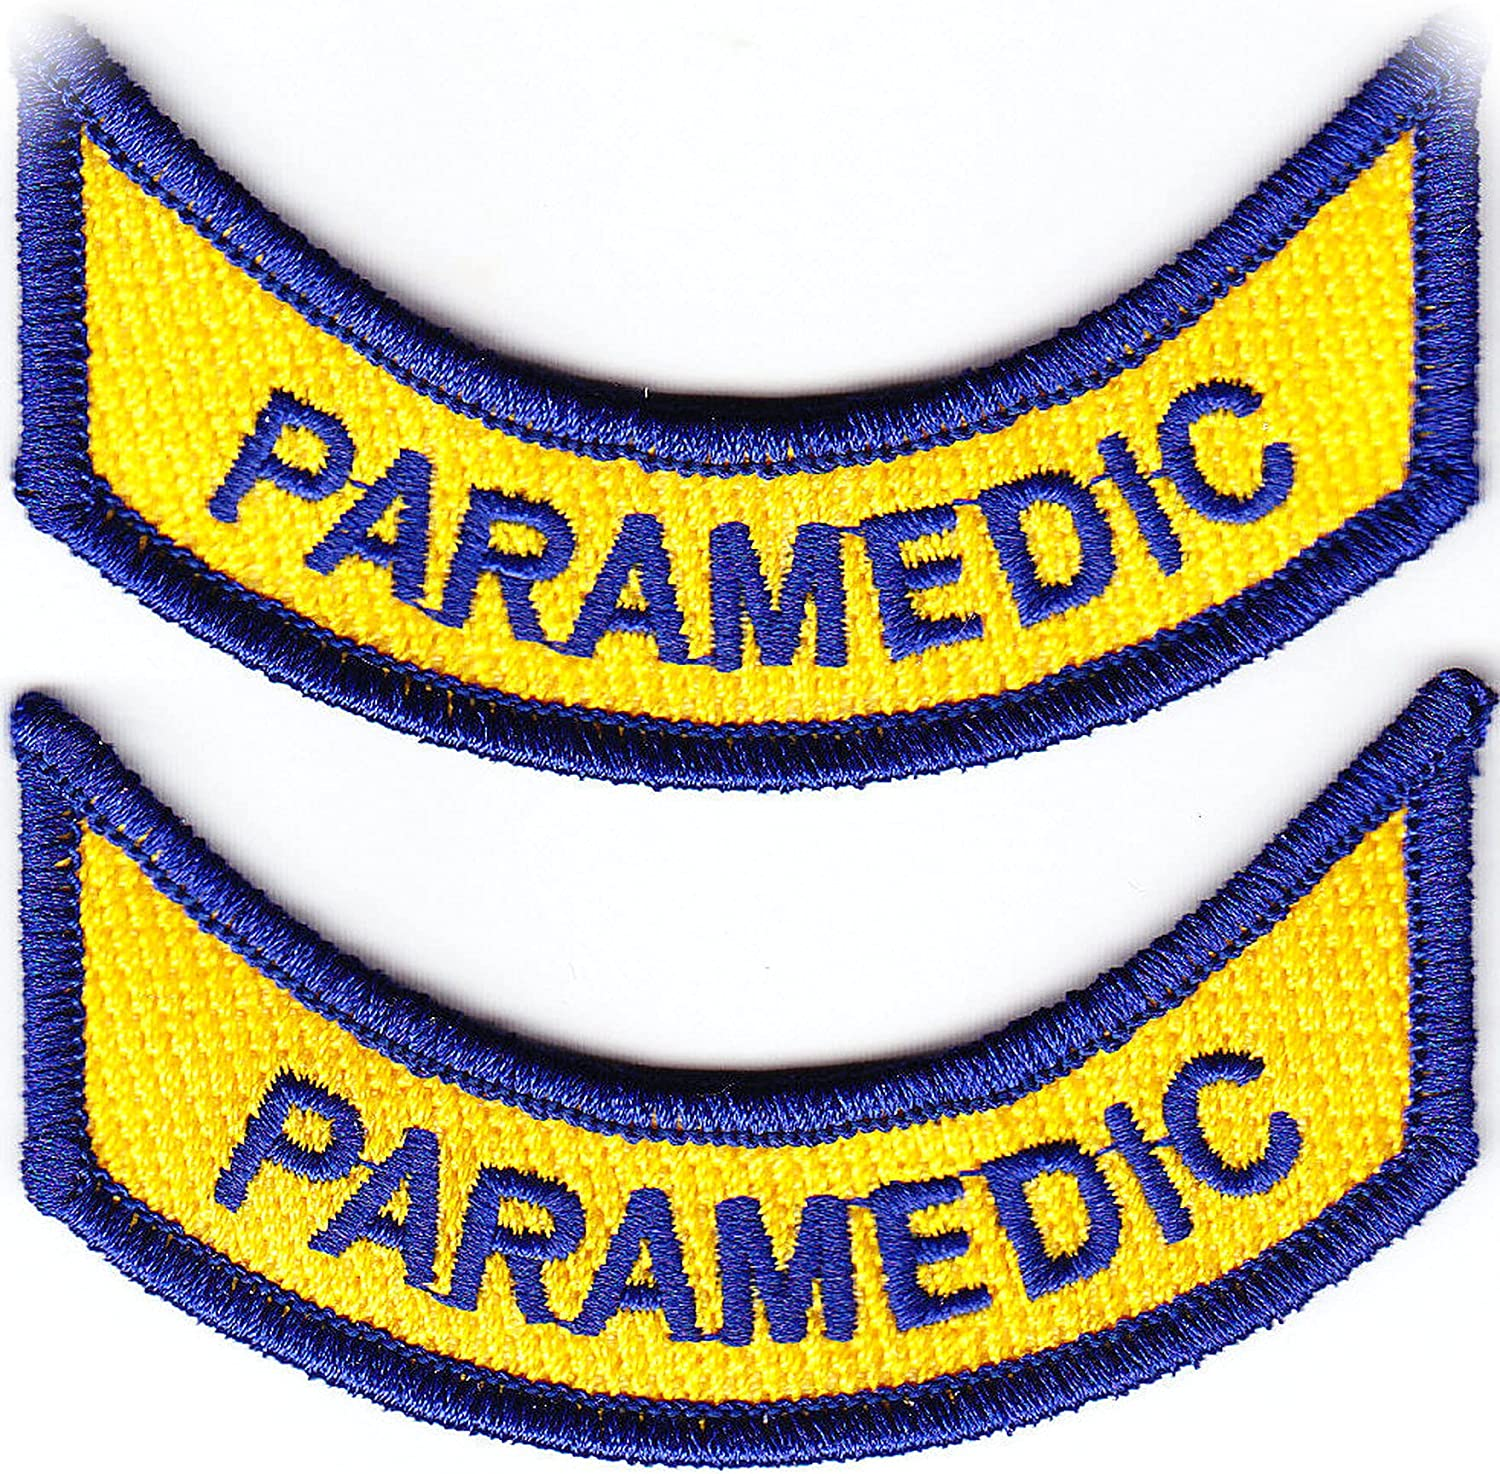 New Virginia Paramedic 2 Rocker tab Direct sale of manufacturer Pair VA products world's highest quality popular Patches 1 LA1212MA